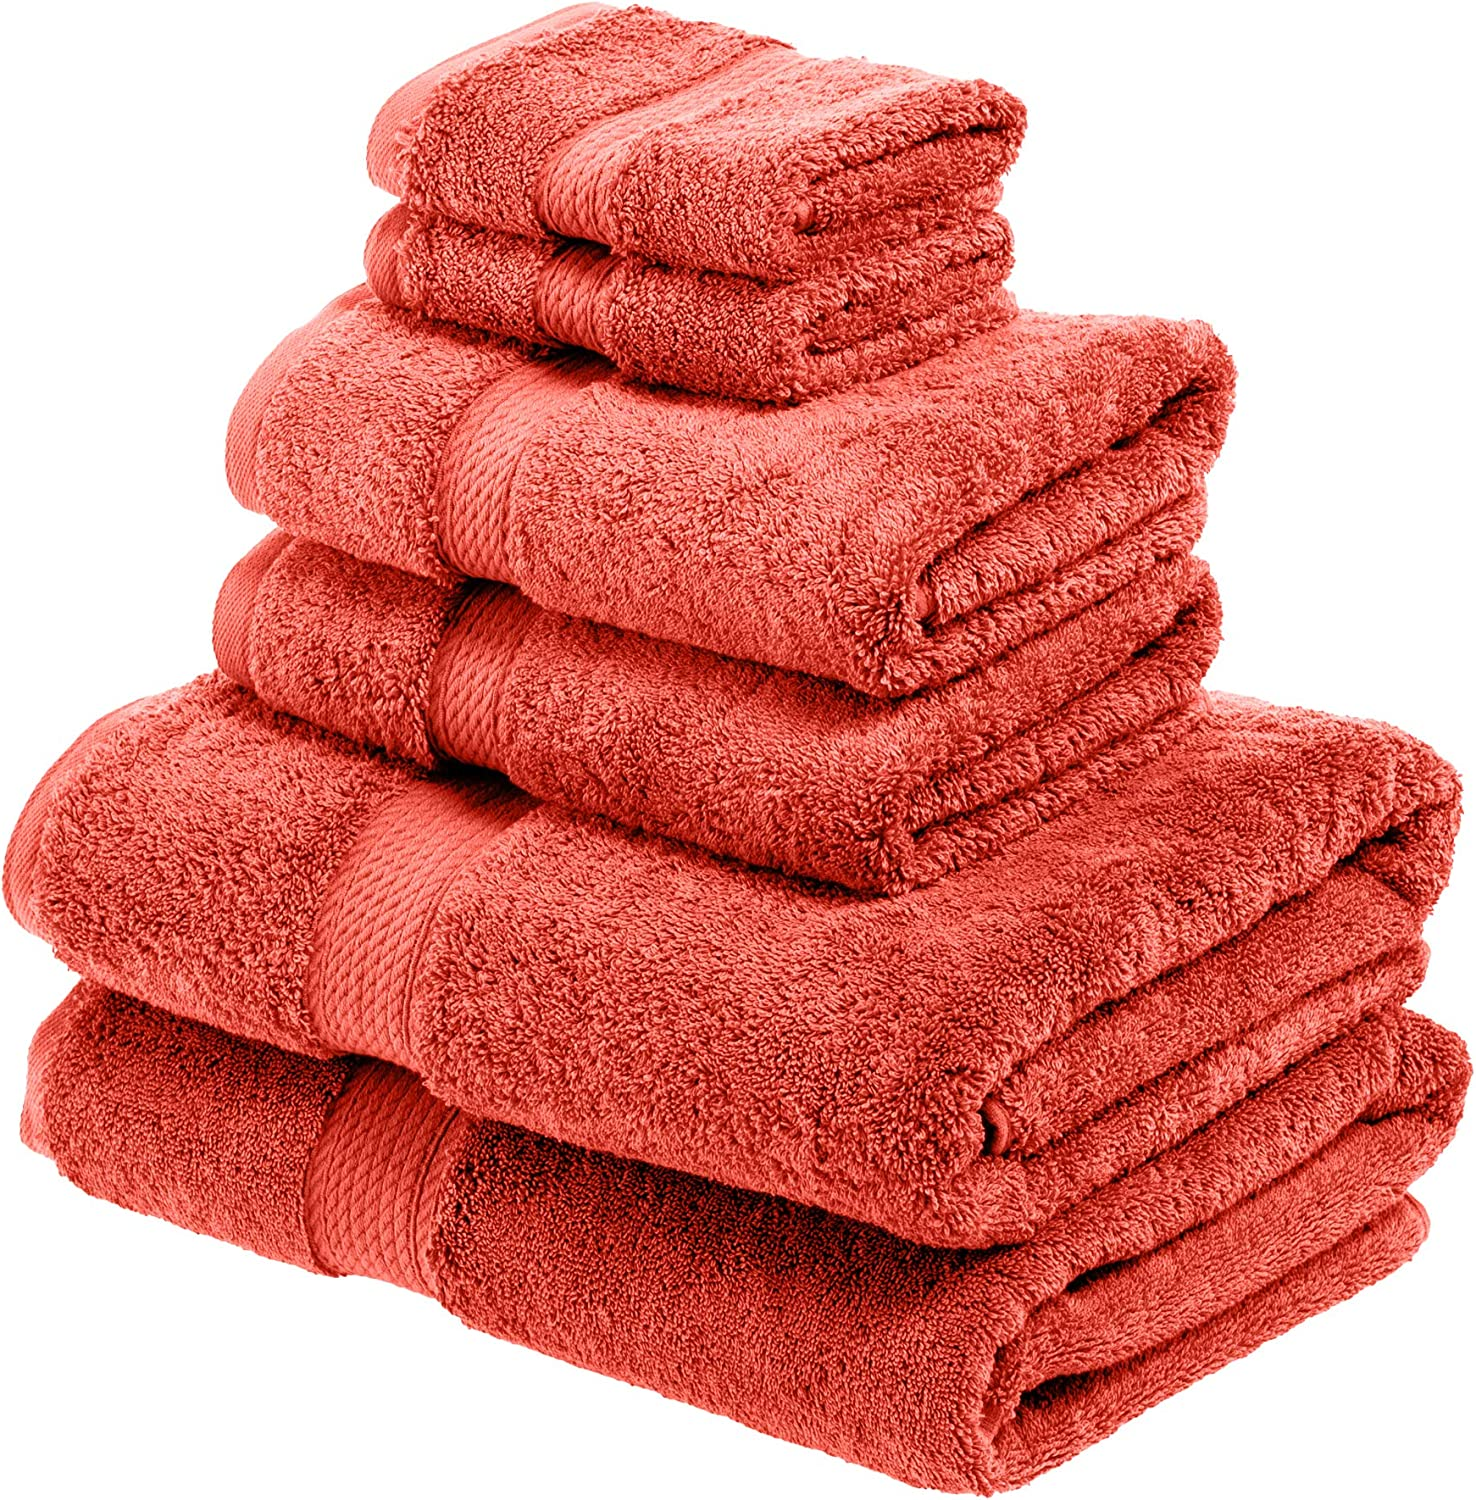 SUPERIOR Bathroom Accessories Bath Collection Towel Set, 6PC, Coral, 6 Piece: Home & Kitchen